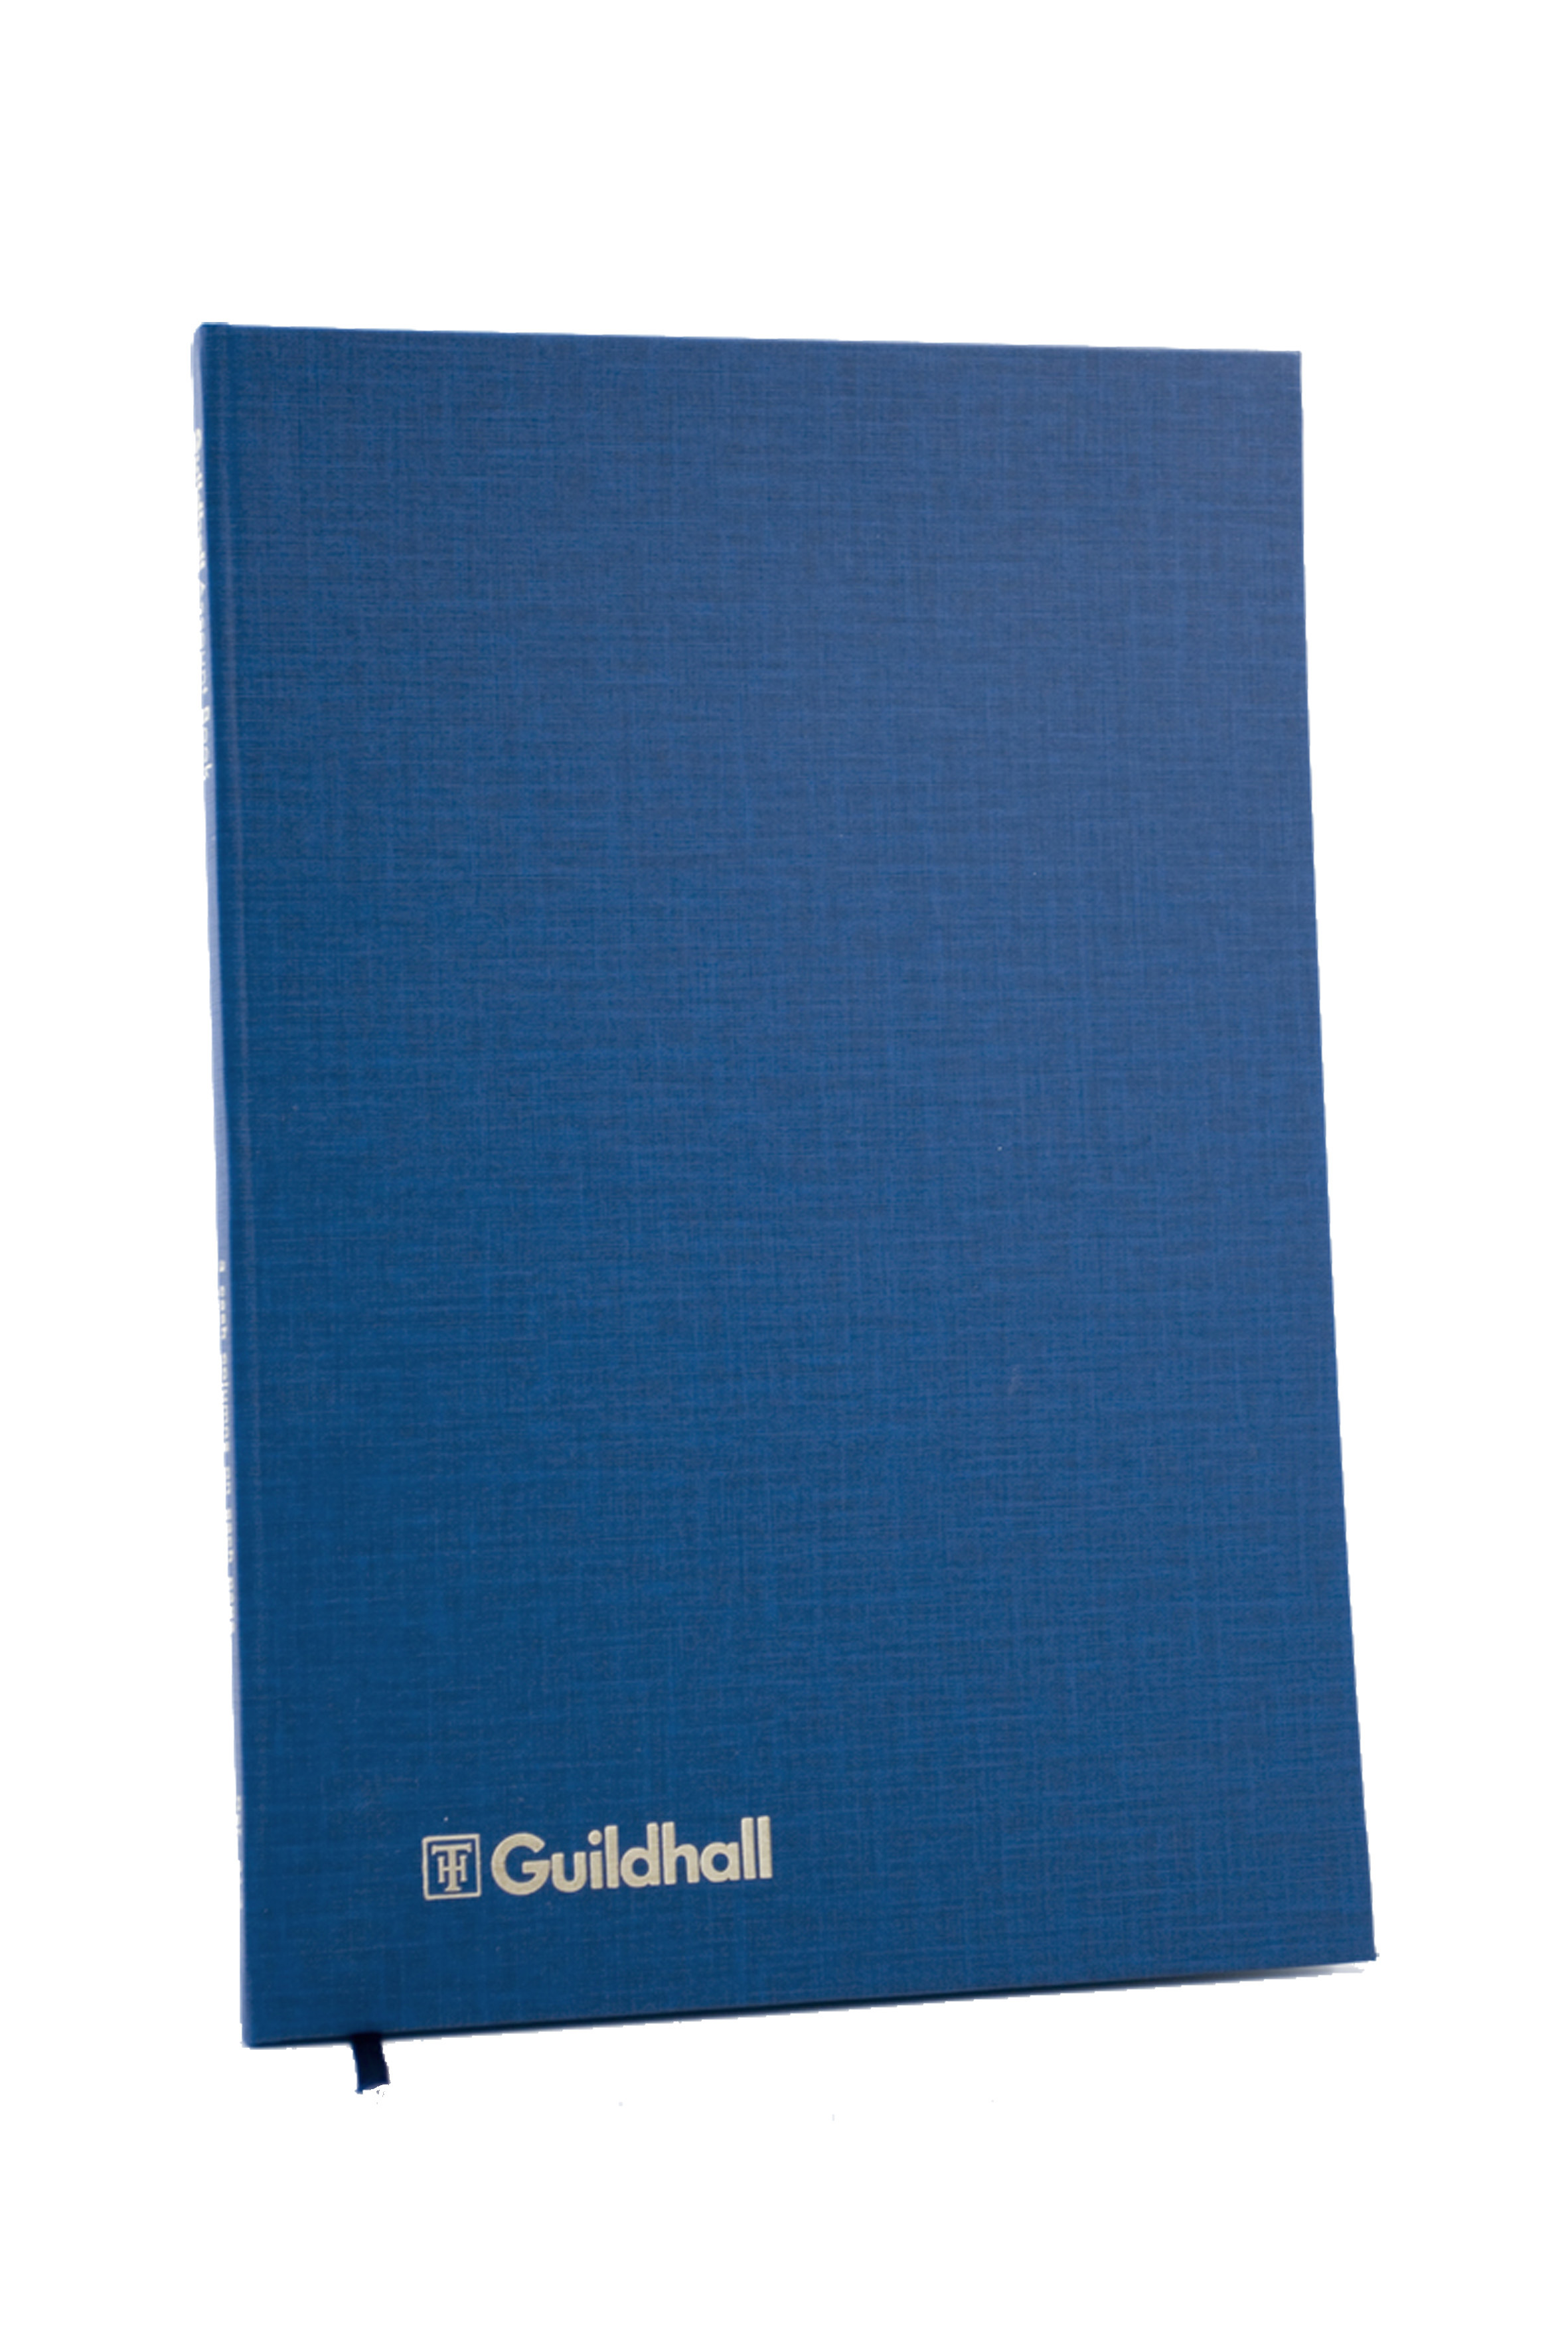 Guildhall Account Book 31 Series 4 Col